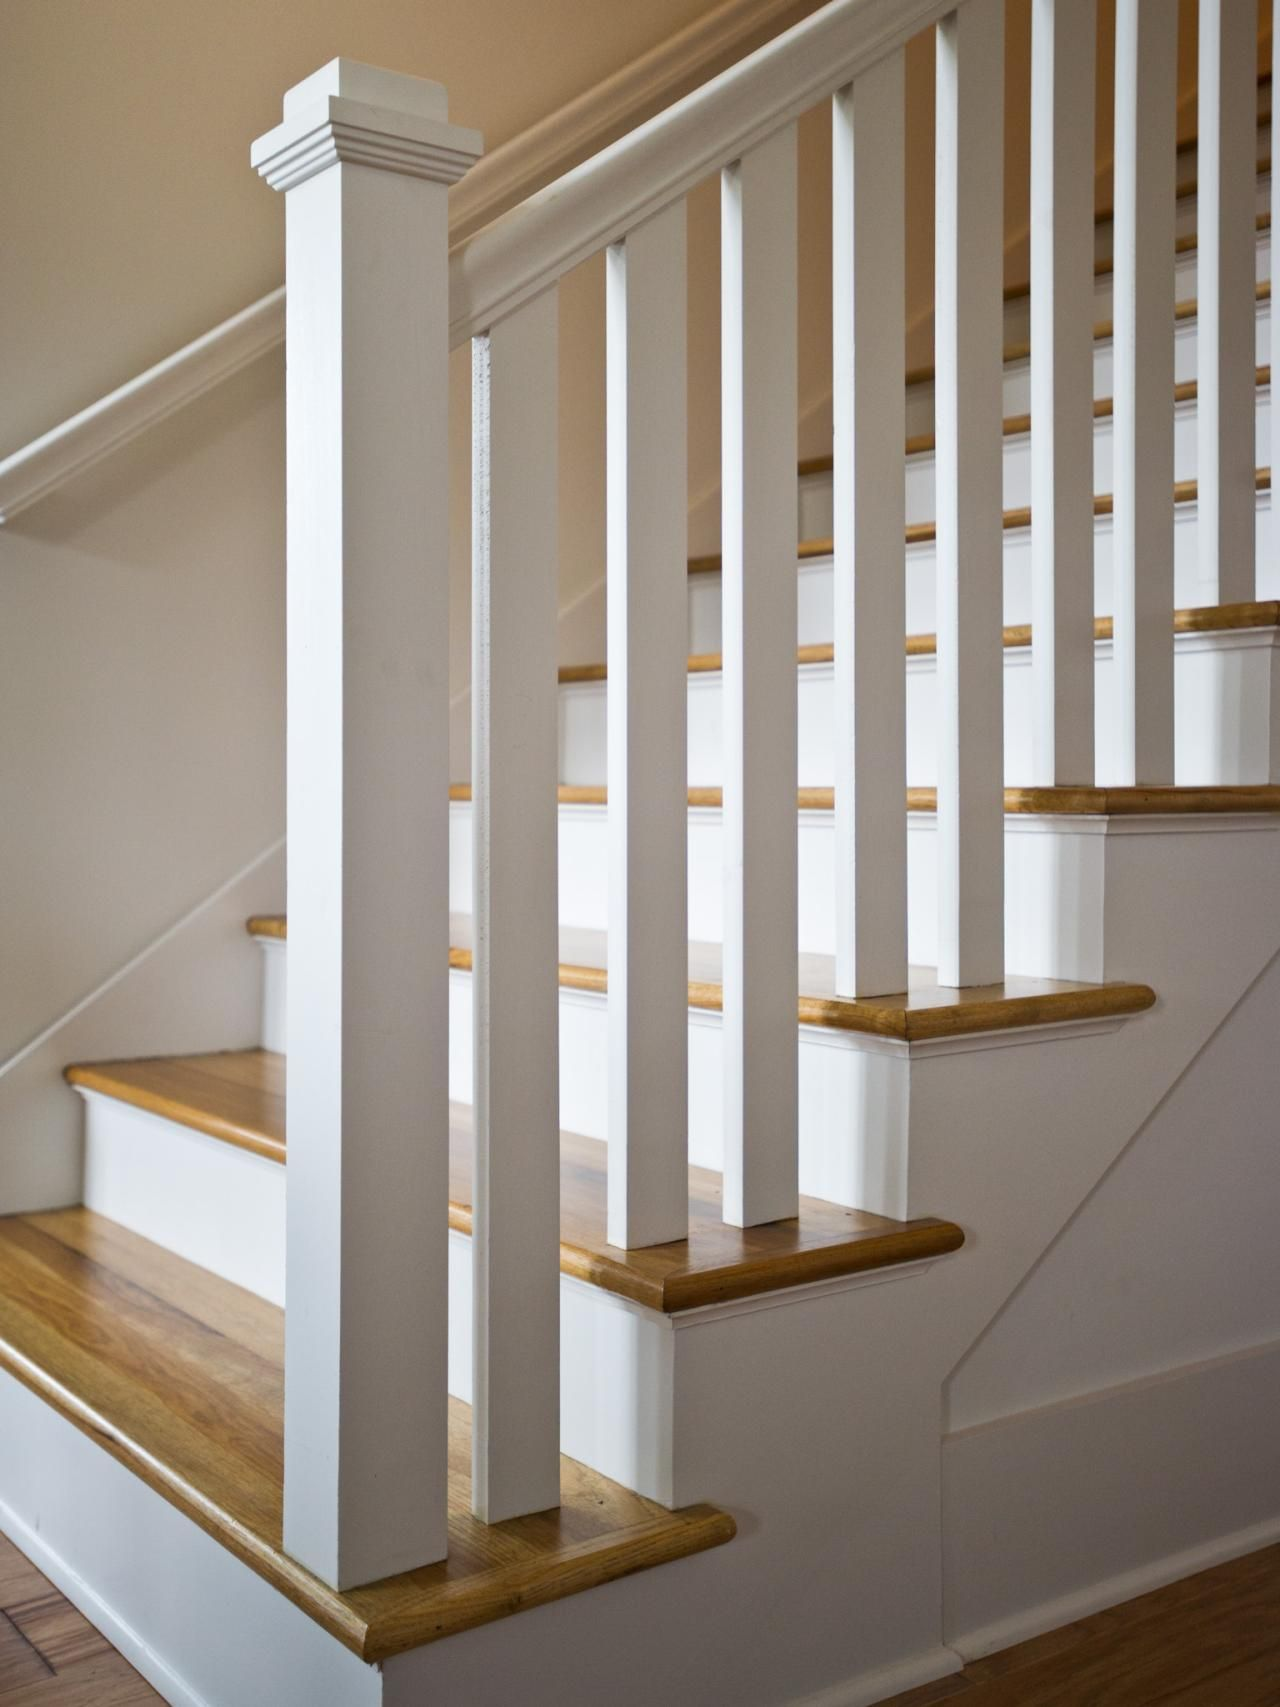 Traditional White Staircase White Staircase Staircase Design | White Wood Stair Railing | Entryway Stair | Metal | Outdoor Stair | Baluster Curved Stylish Overview Stair | Glass